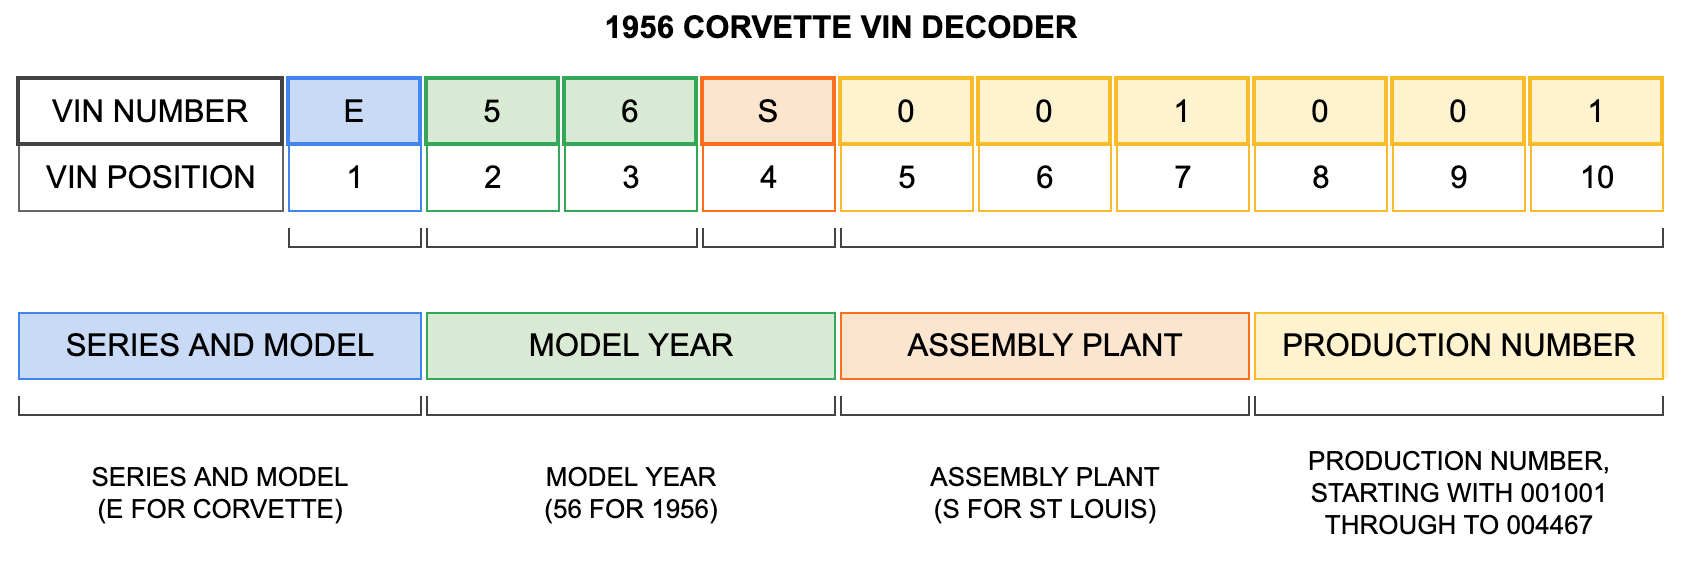 1956 Corvette VIN Decoder